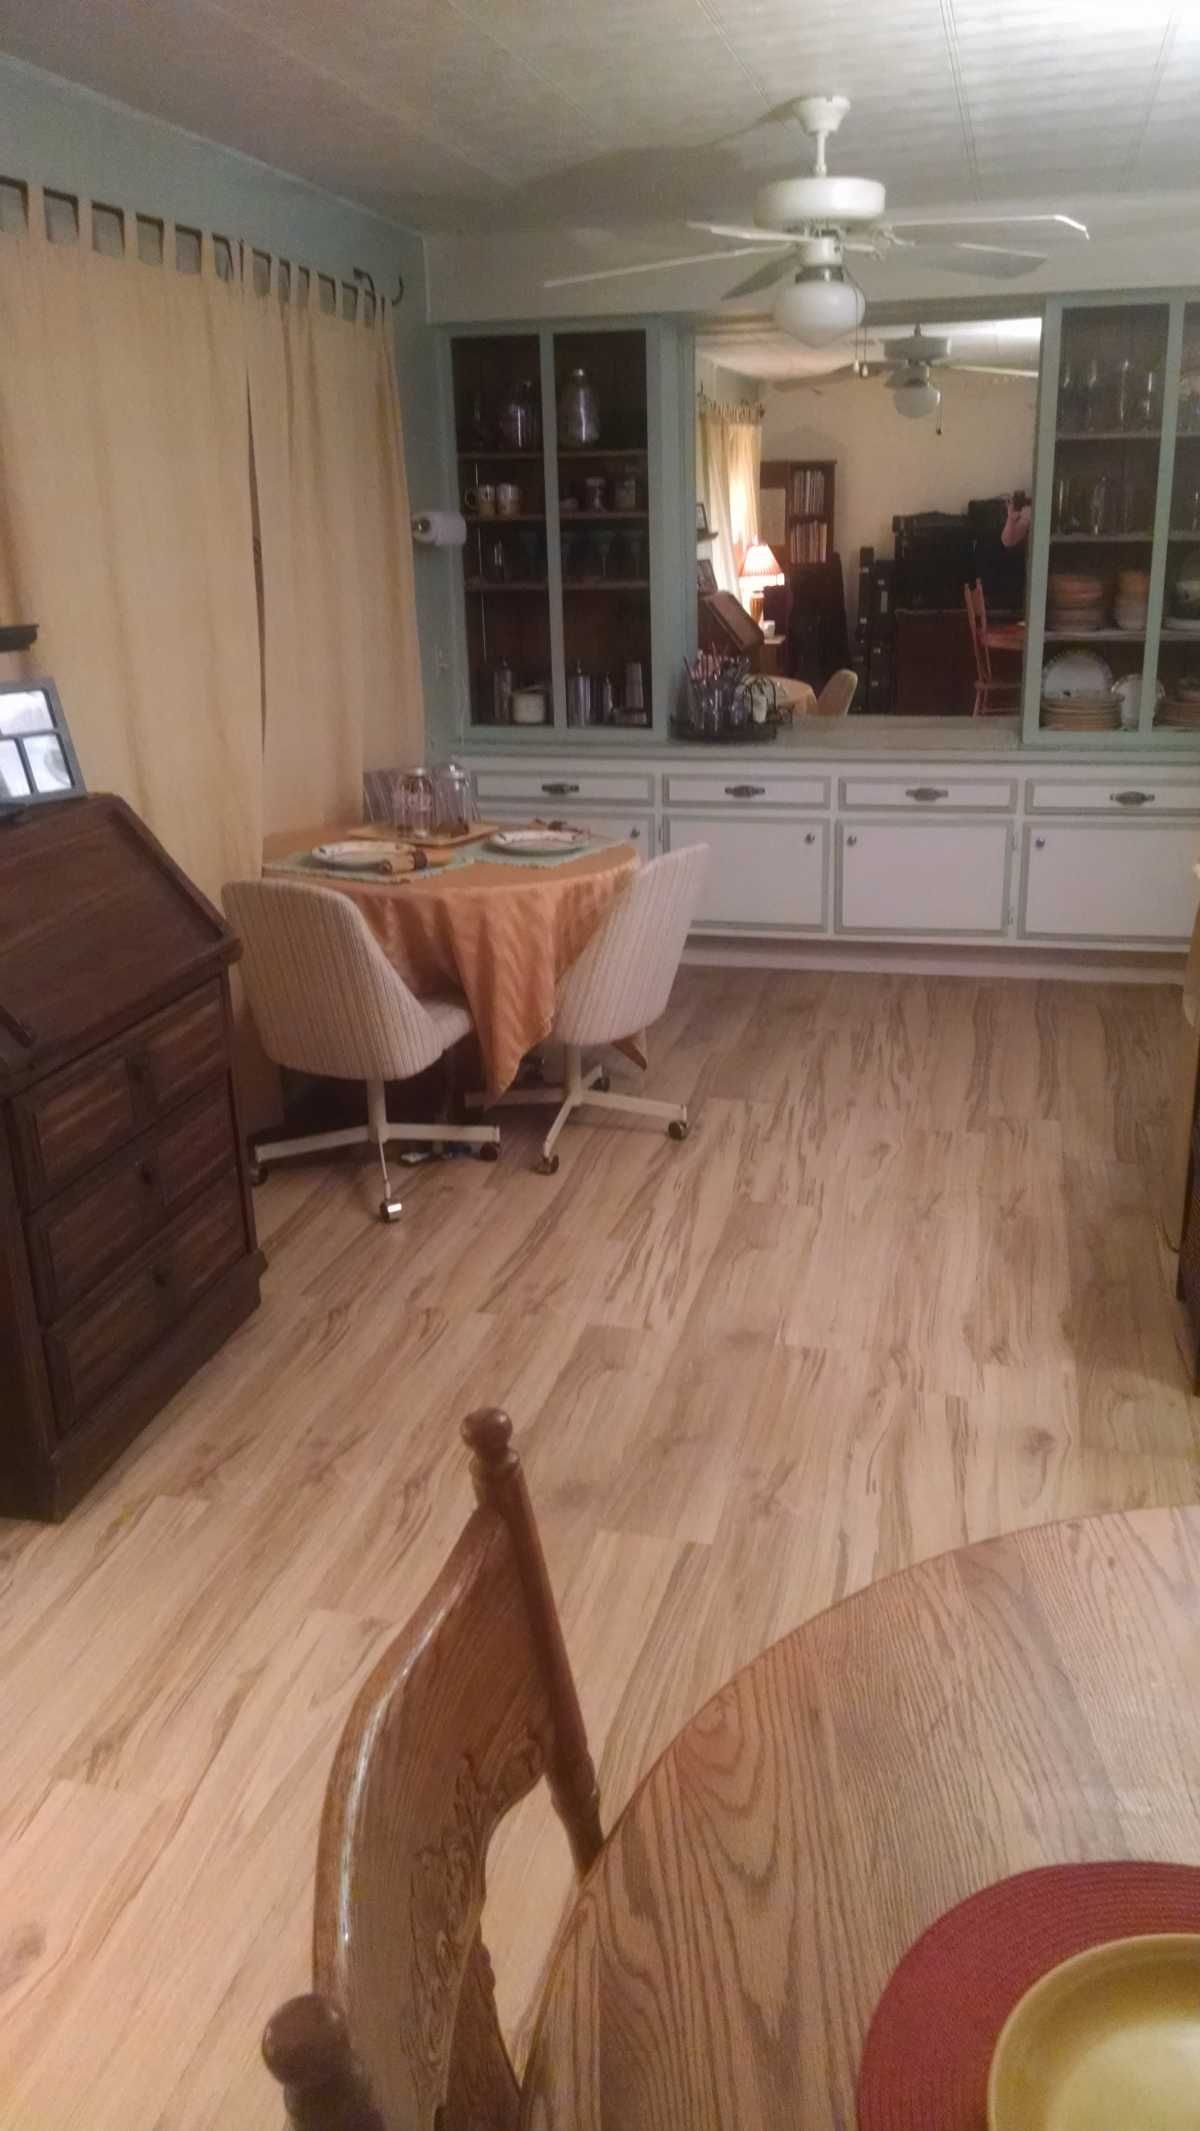 Built In Cabinet in Dining 1970 Golden West Mobile Home ...